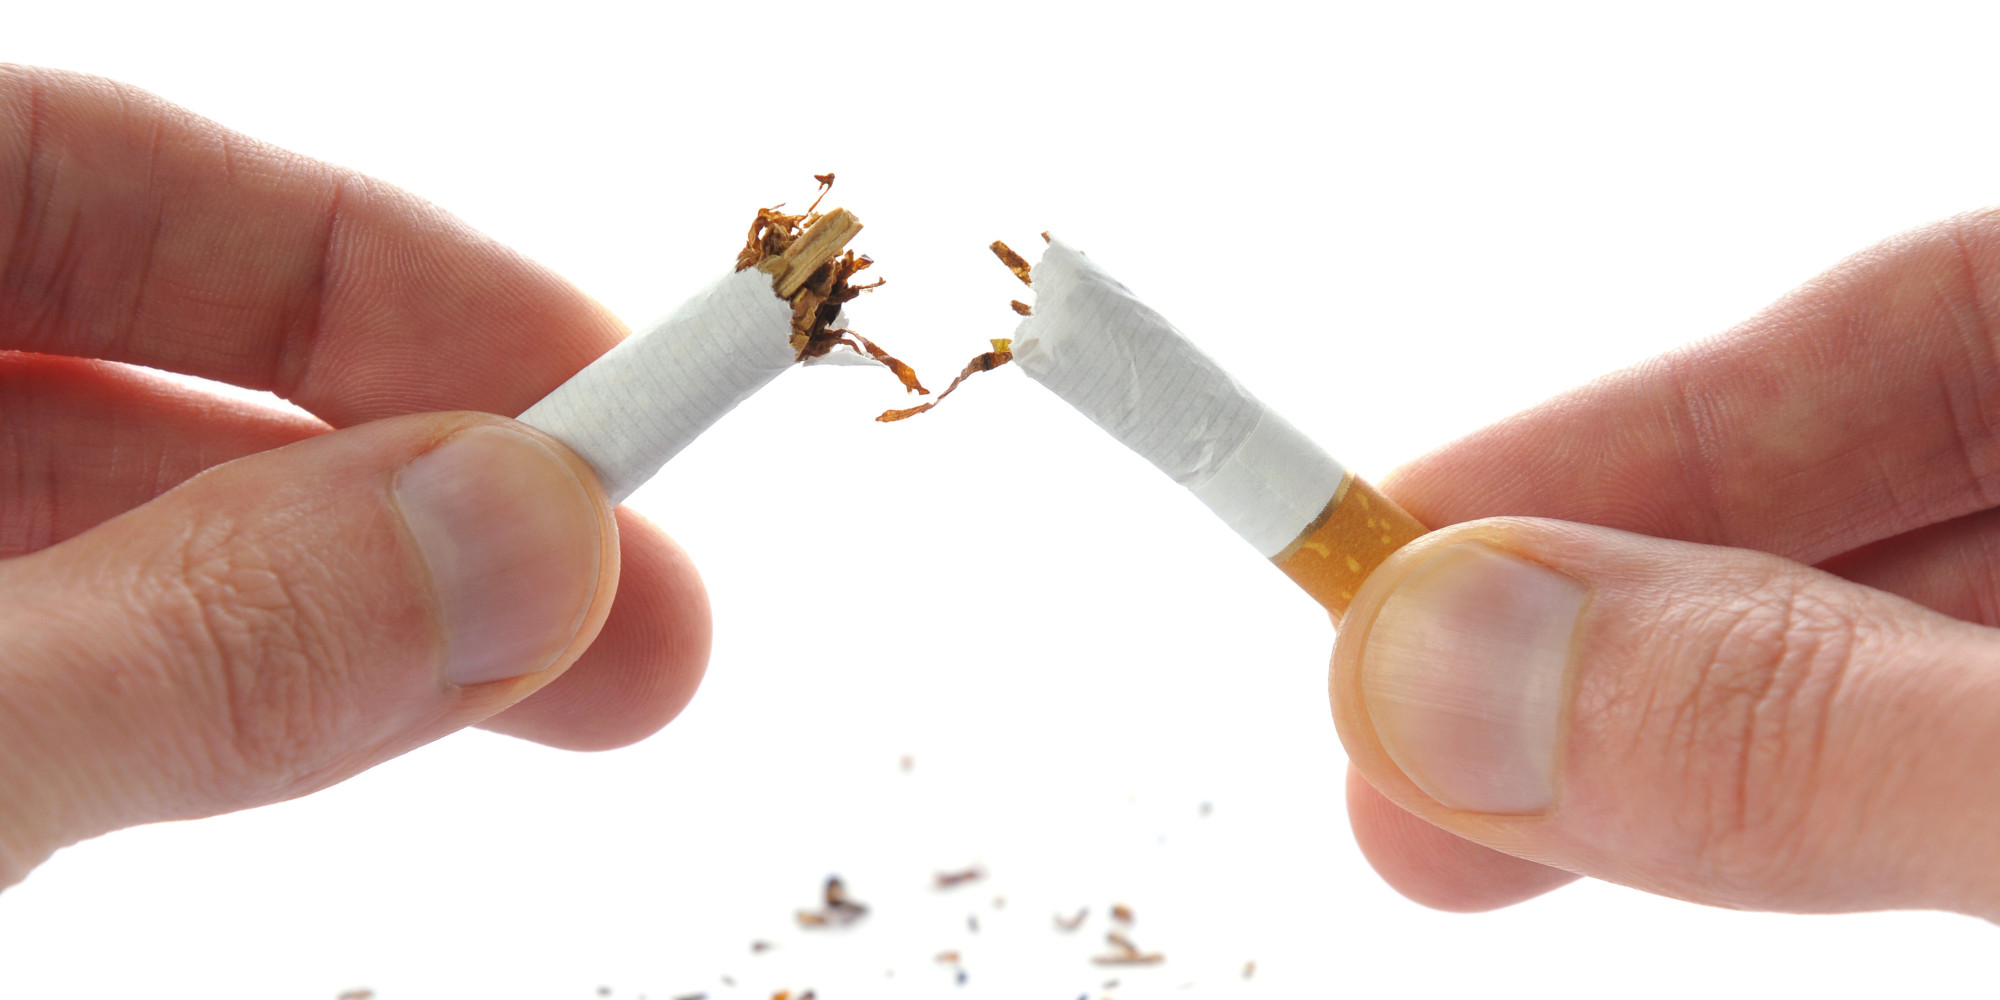 What would you like to do if you could turn back the time? | Quitting smoking